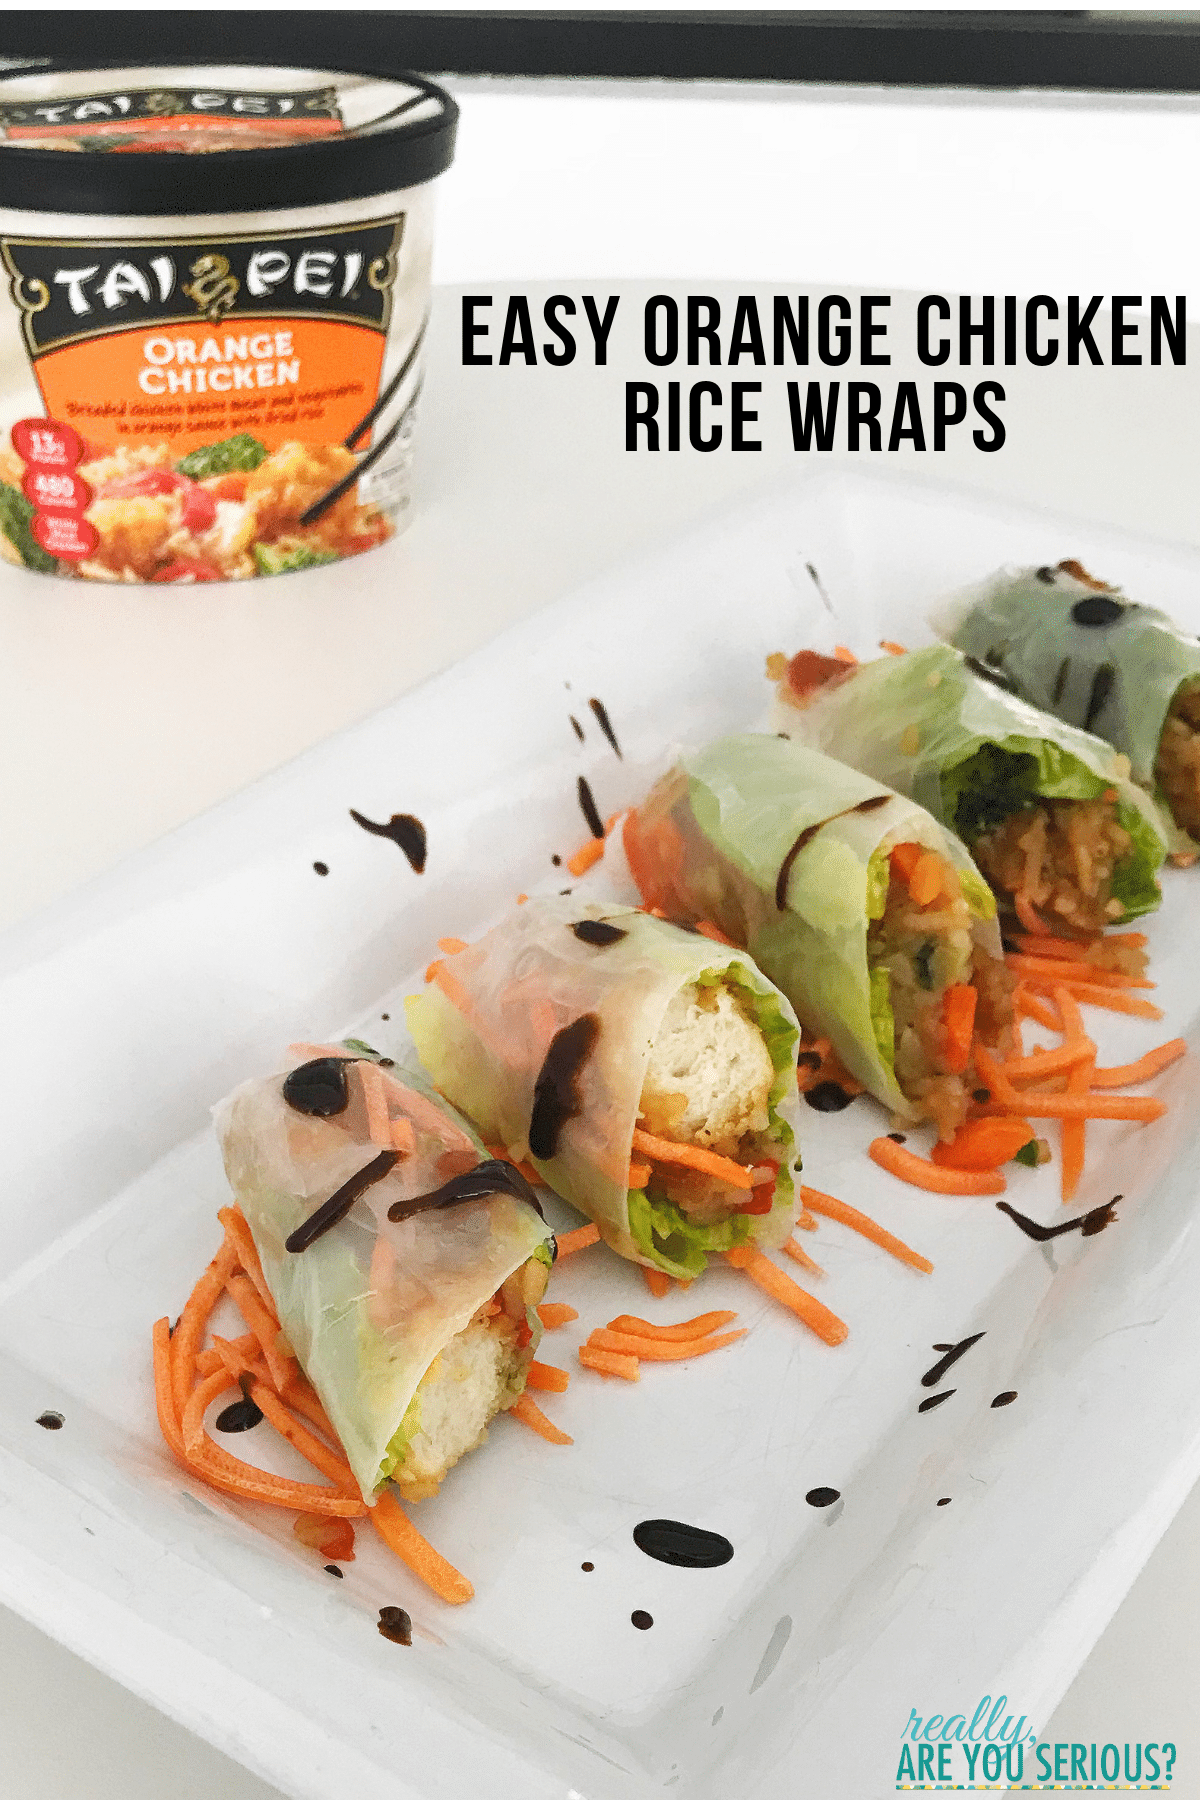 Easy orange chicken rice wraps